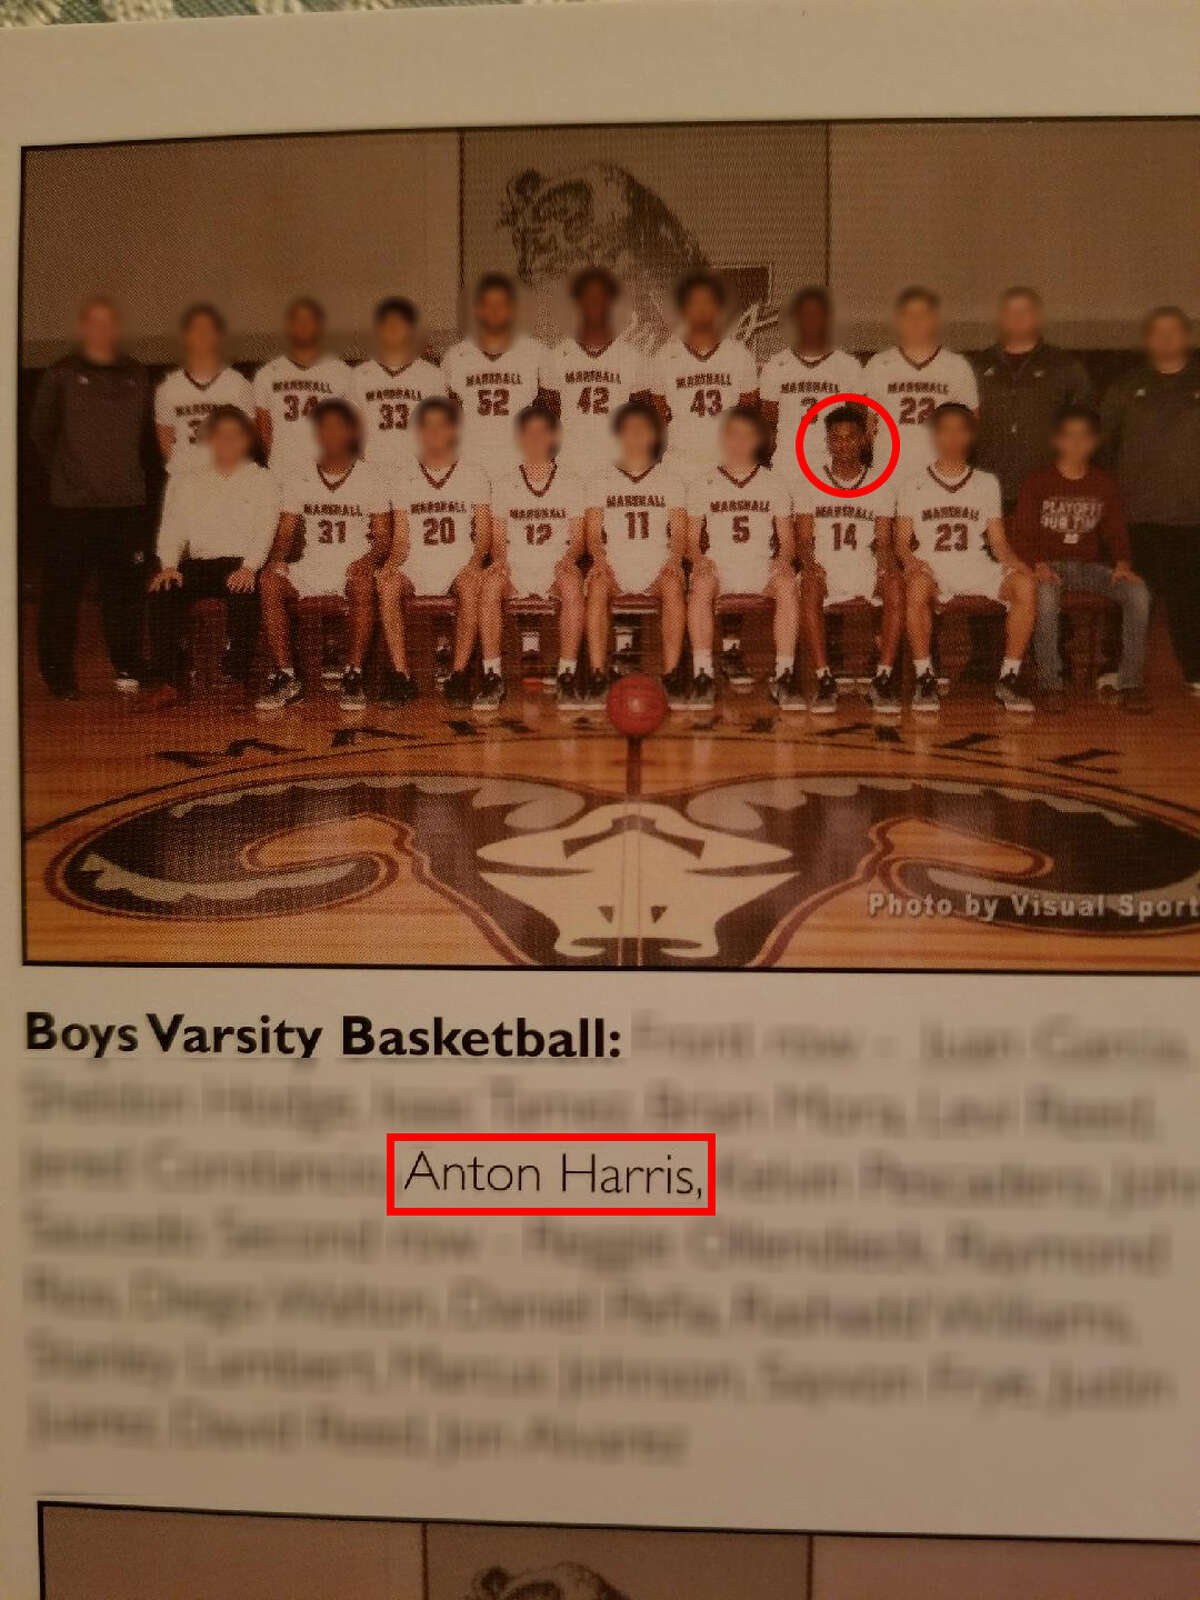 Anton Jamail Harris, who was arrested in connection to sexual assaults in the Medical Center area on June 8, 2017, was on the varsity basketball team at Marshall High School in San Antonio.